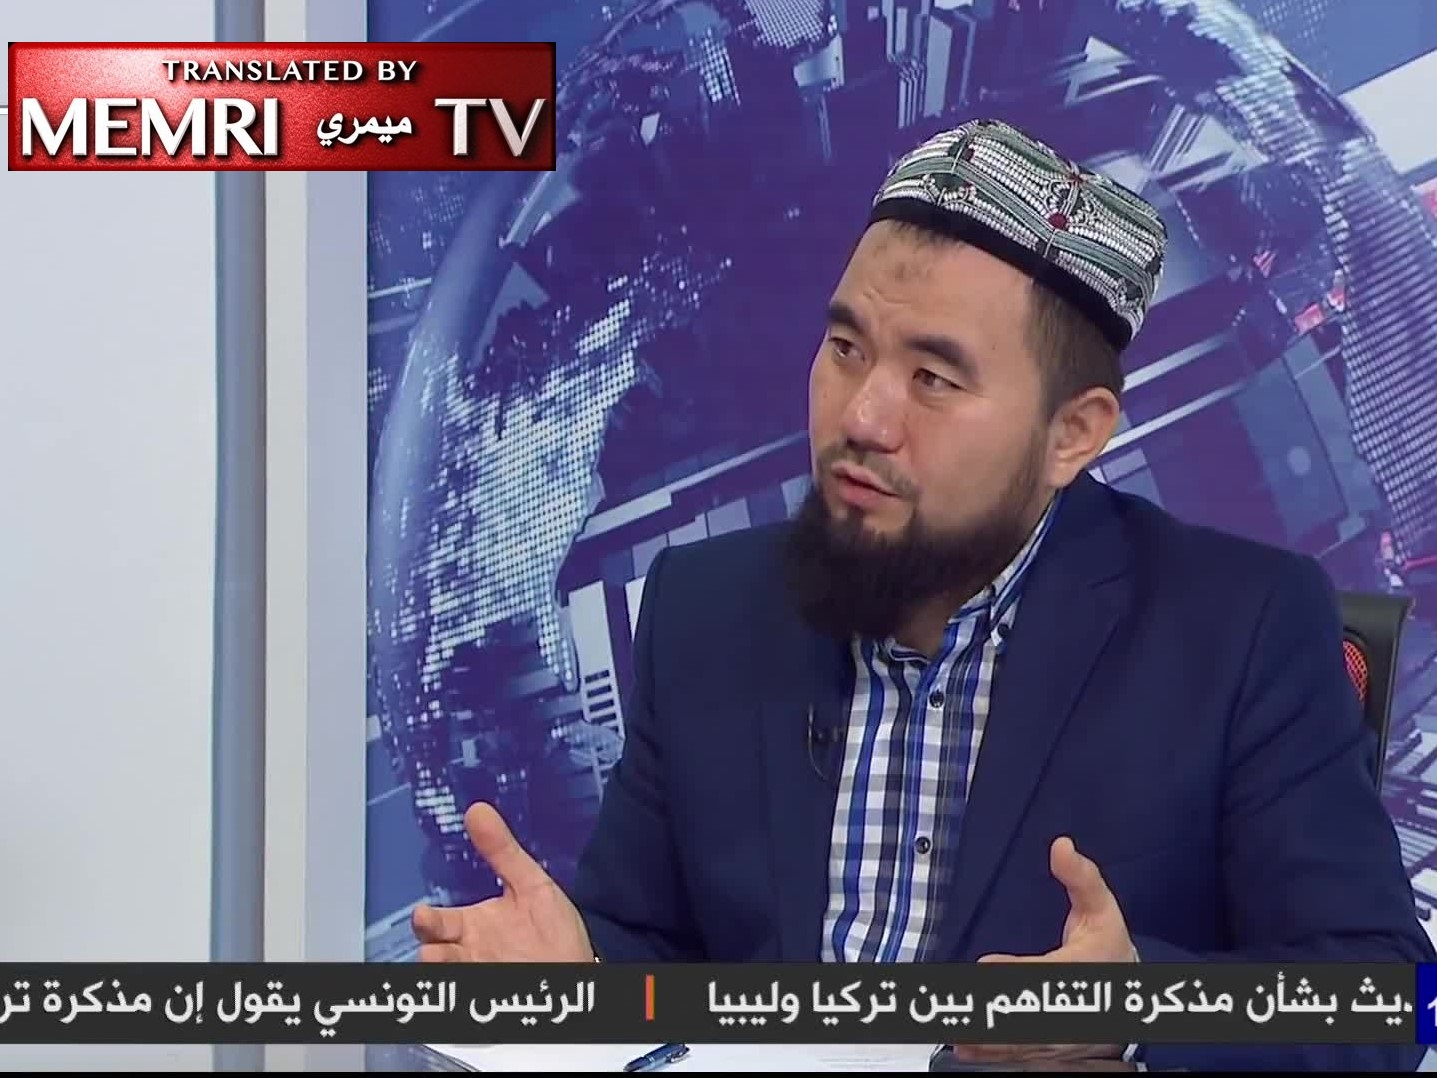 Uyghur Sheikh Mahmoud Muhammad: The Muslim World Condemns Treatment of Palestinians, Rohingya Muslims, but Supports Chinese Policy against the Uyghurs